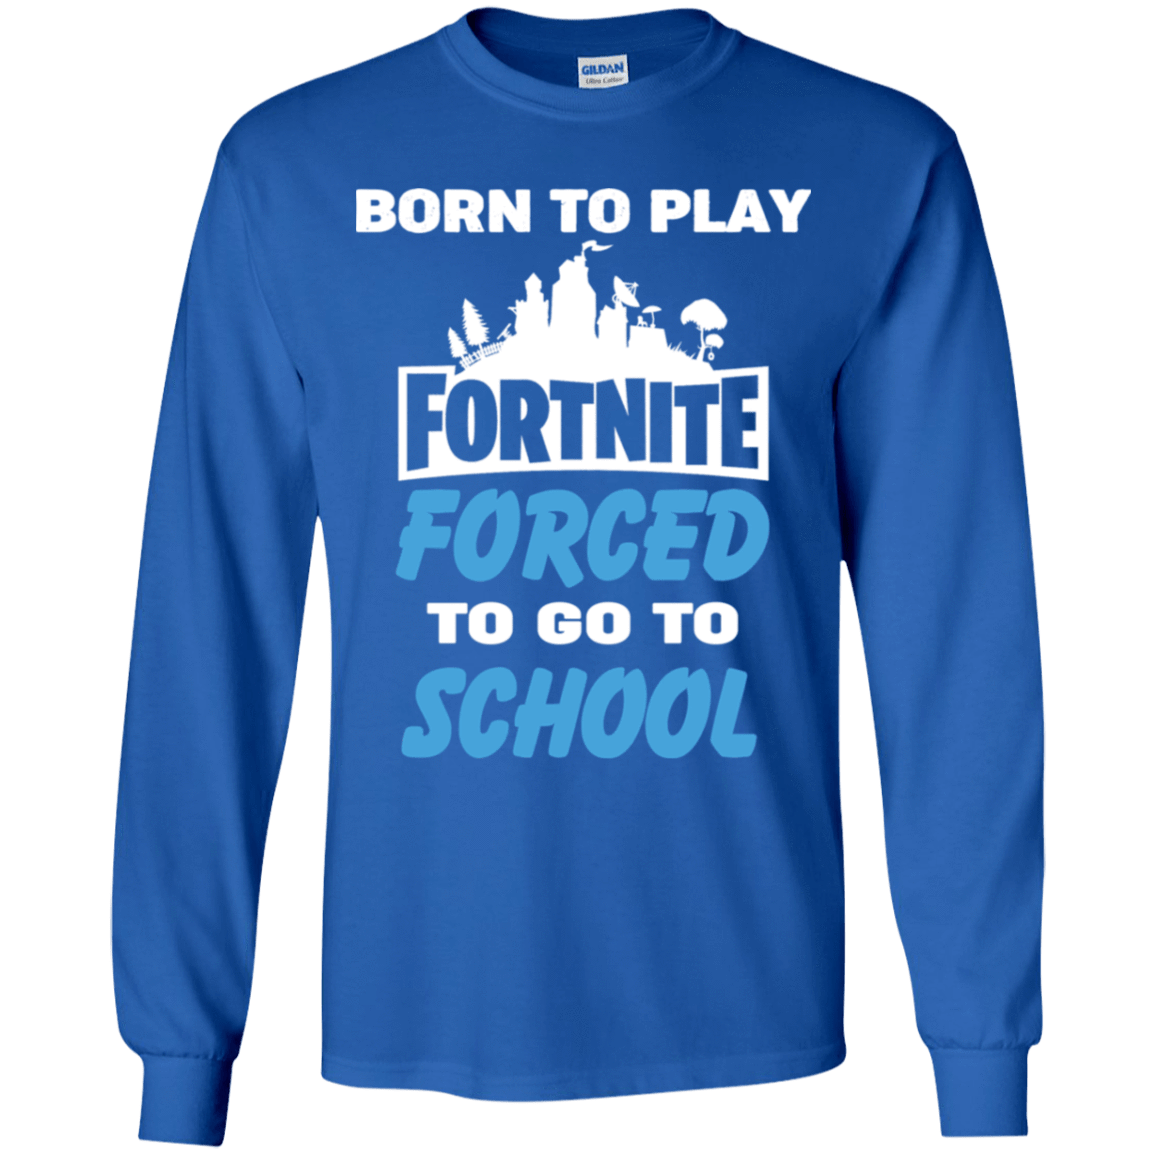 Born To Play Fortnite Forced To Go To School 56-322-74332976-1231 - Tee Ript